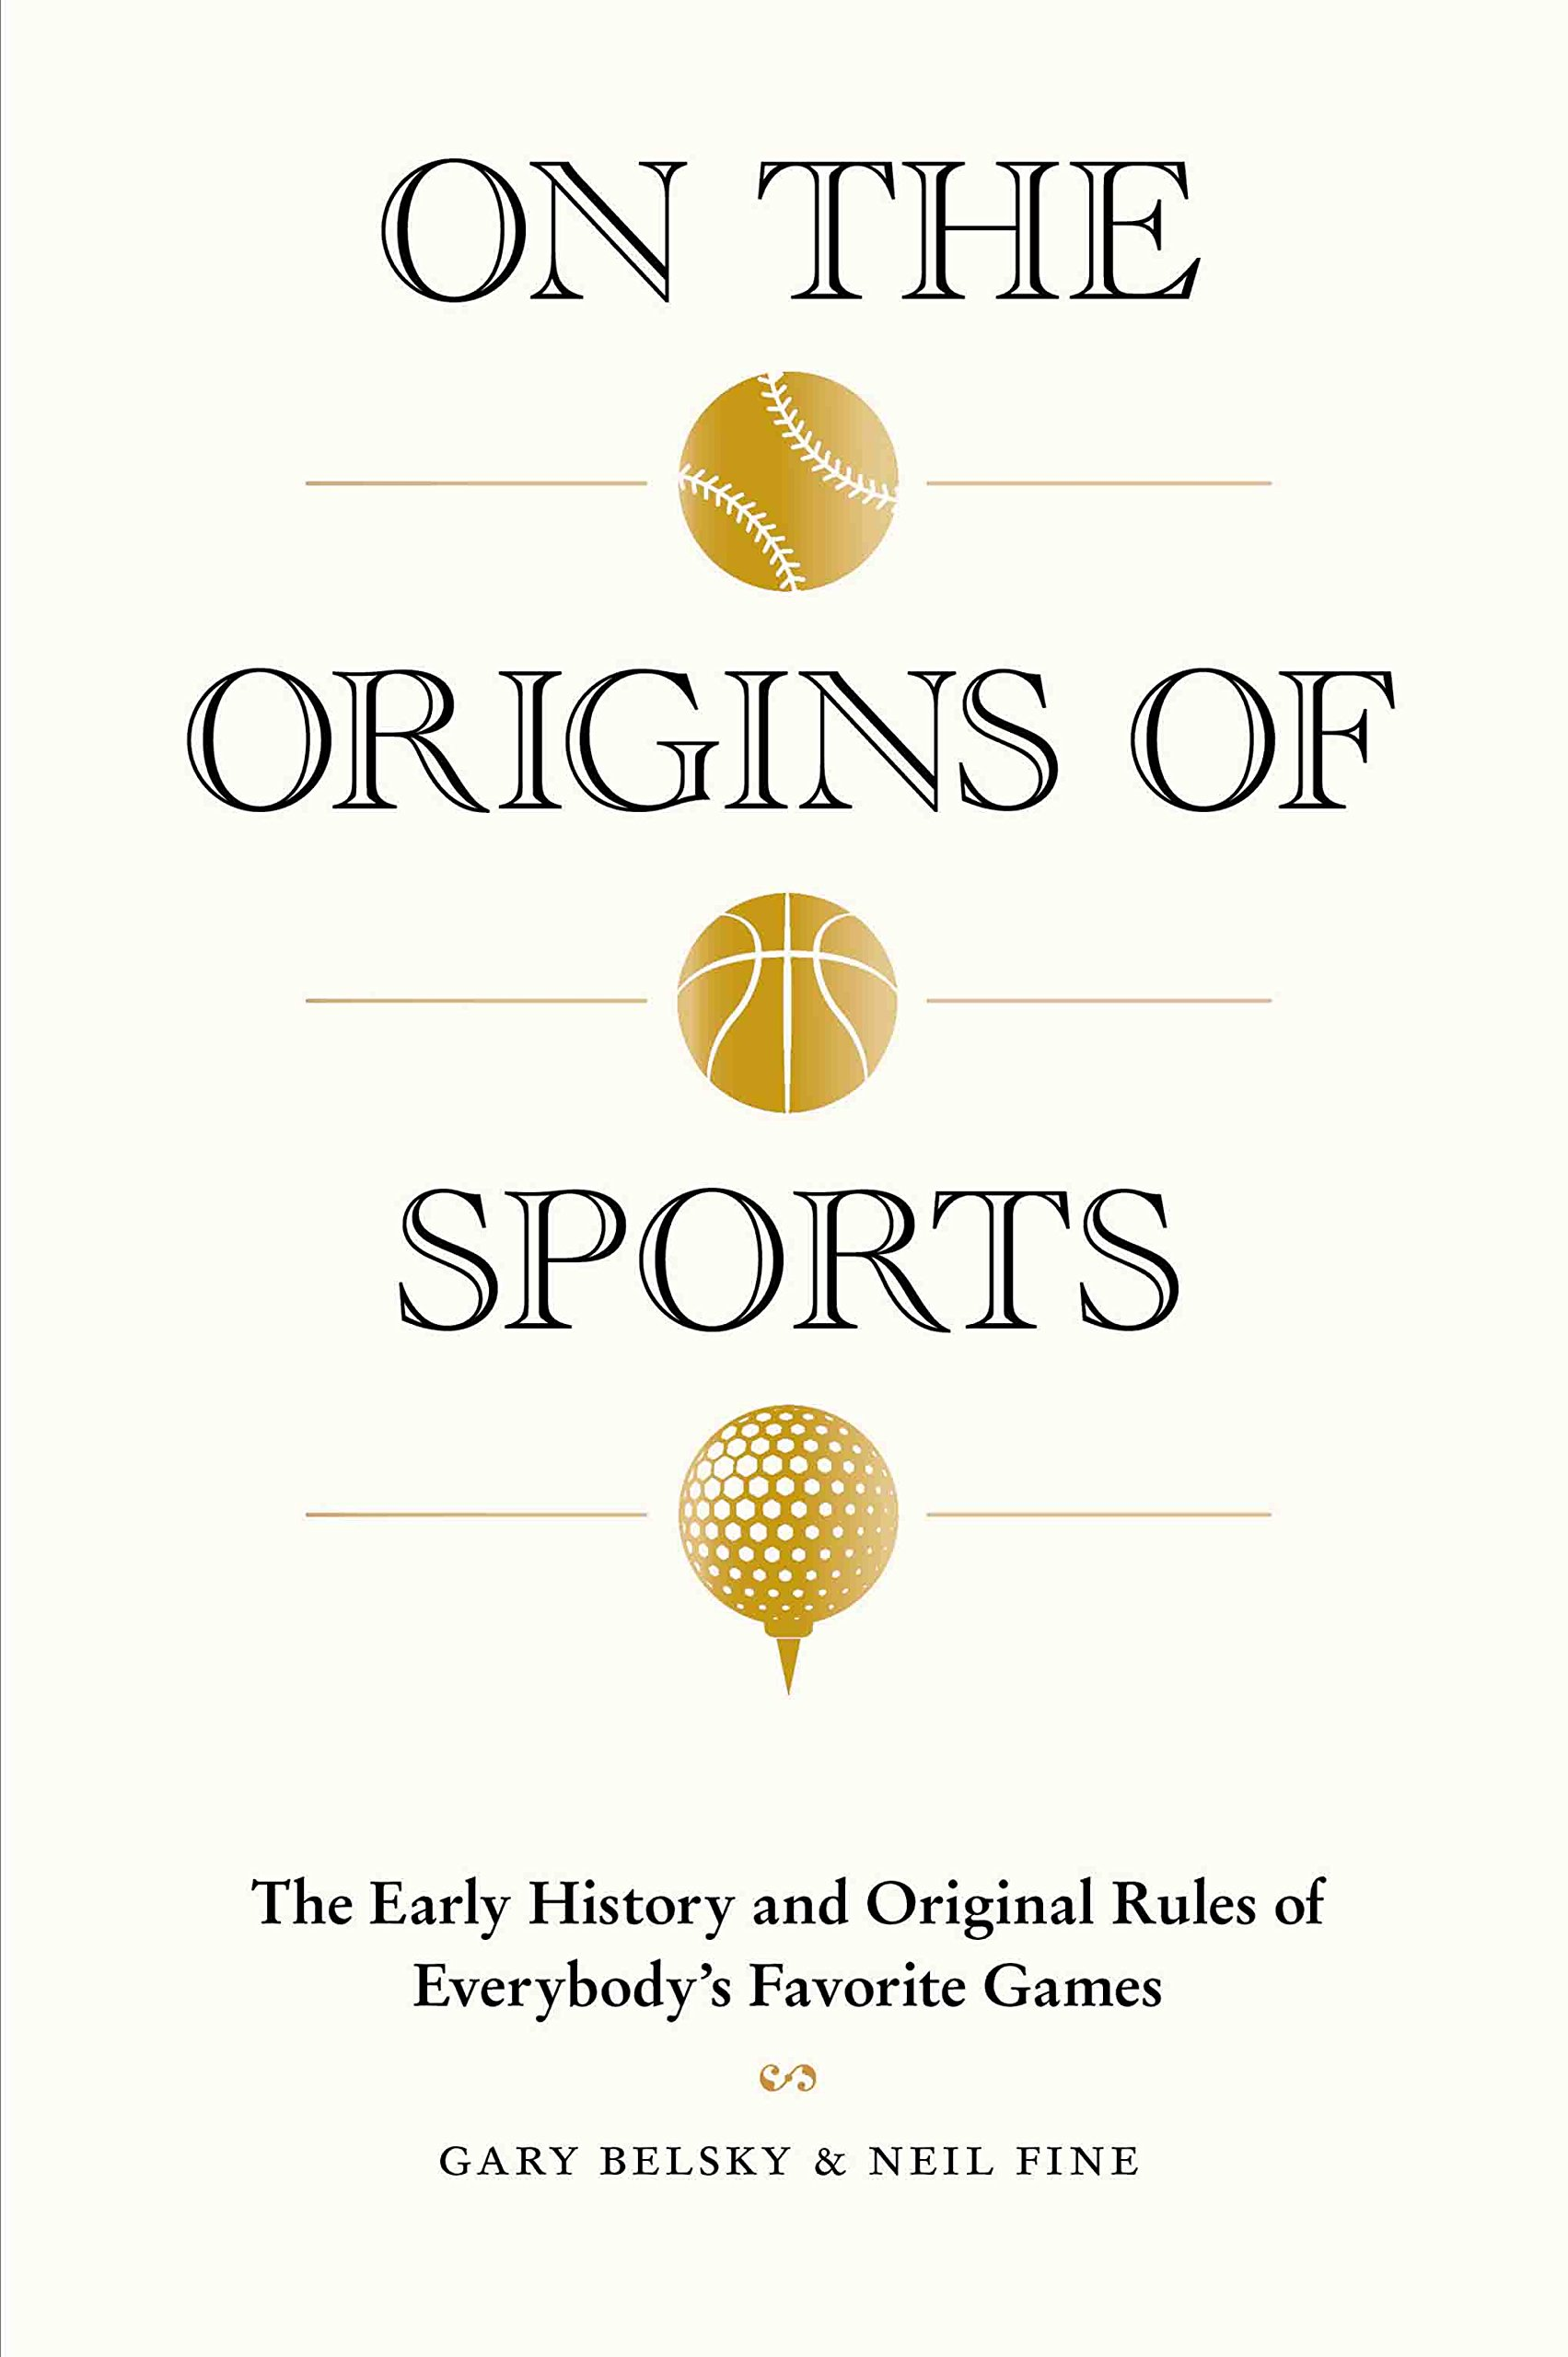 the Origins of Sports The Early History and Original Rules of